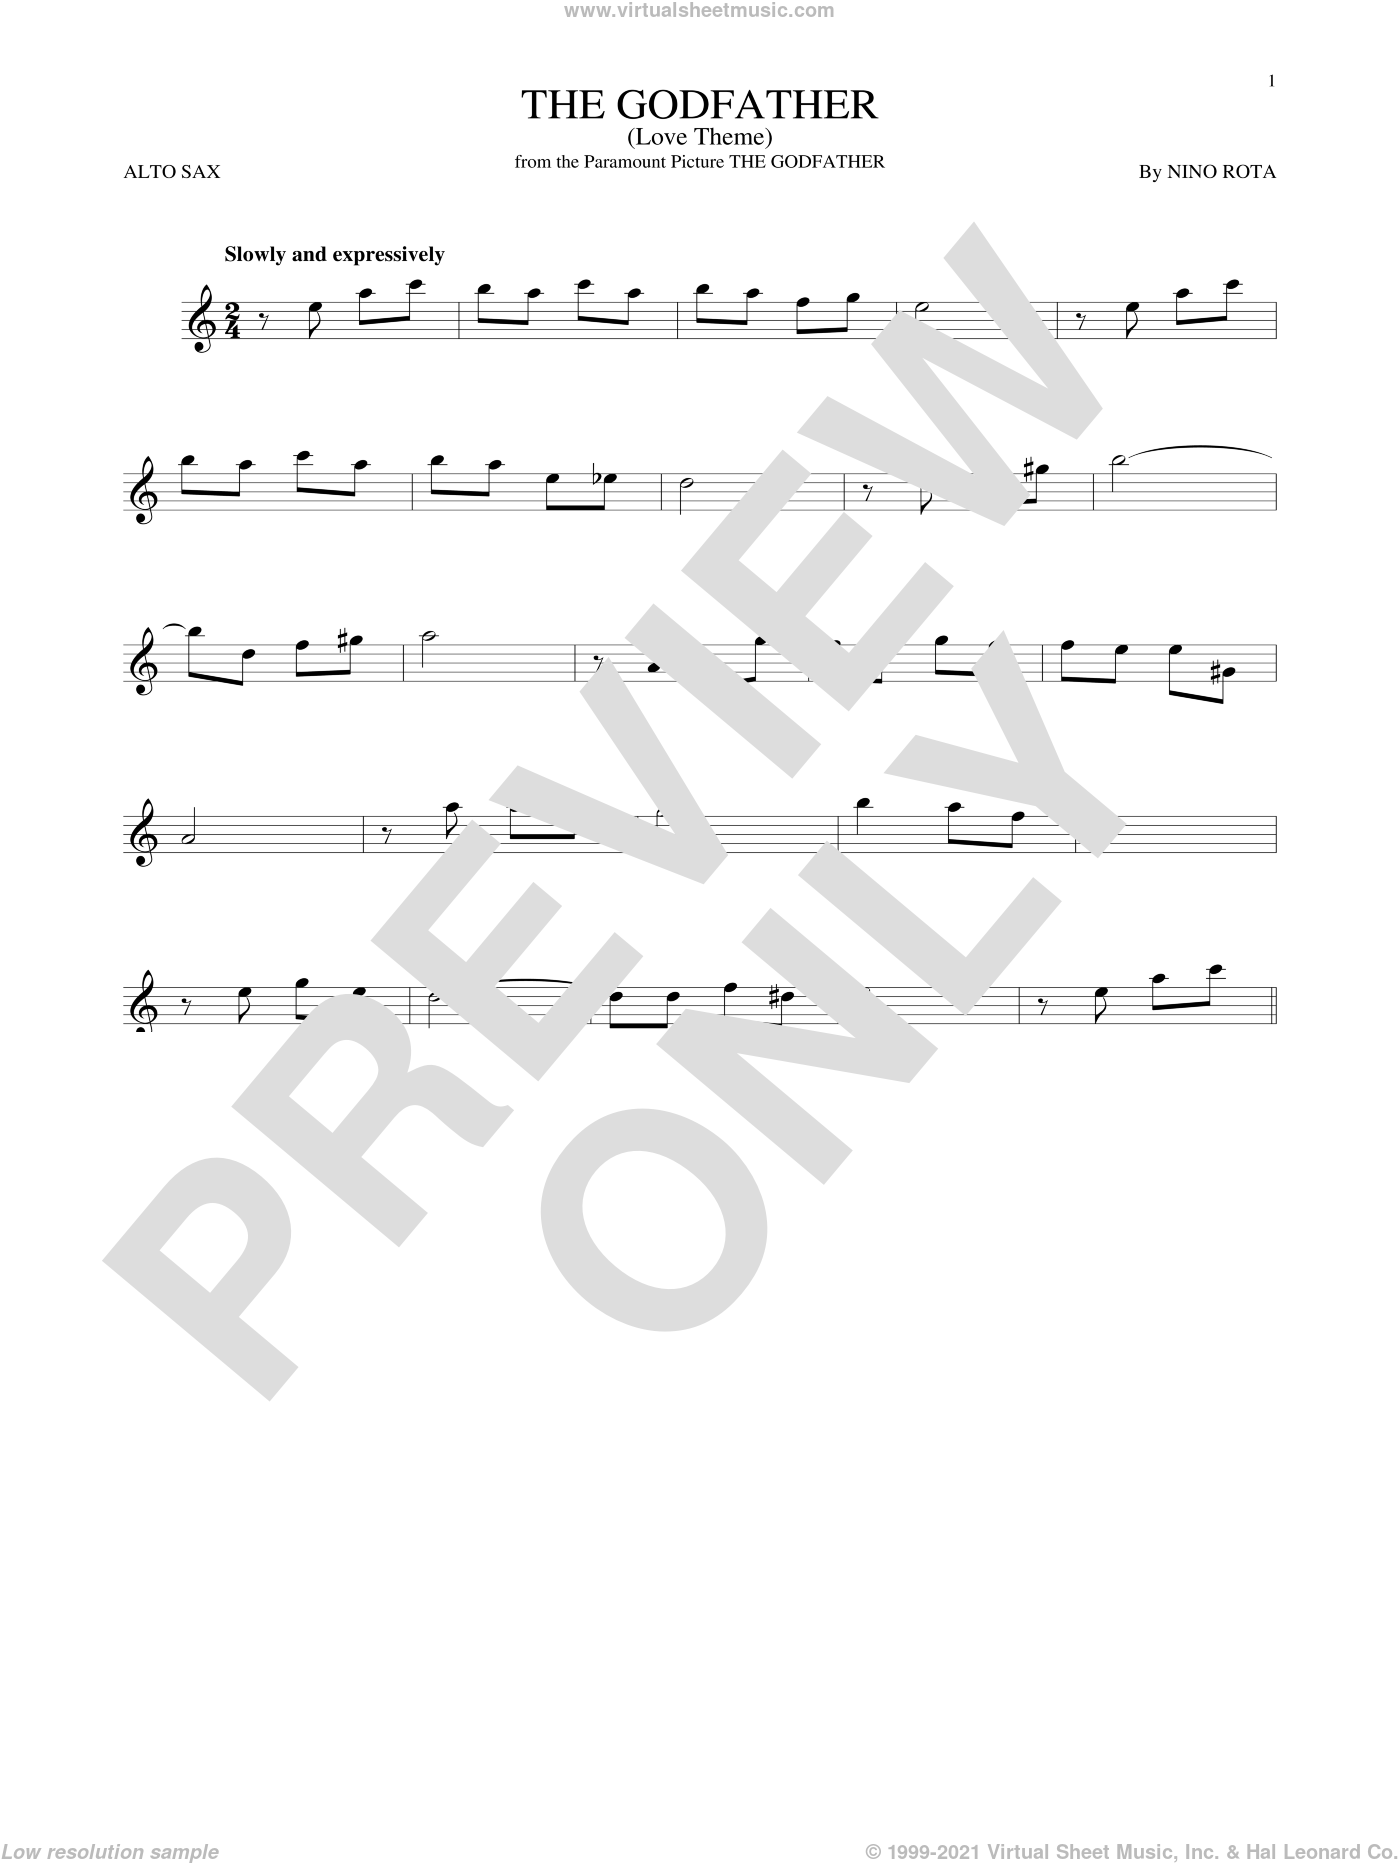 The Godfather (Love Theme) sheet music for alto saxophone solo by Nino Rota, intermediate skill level